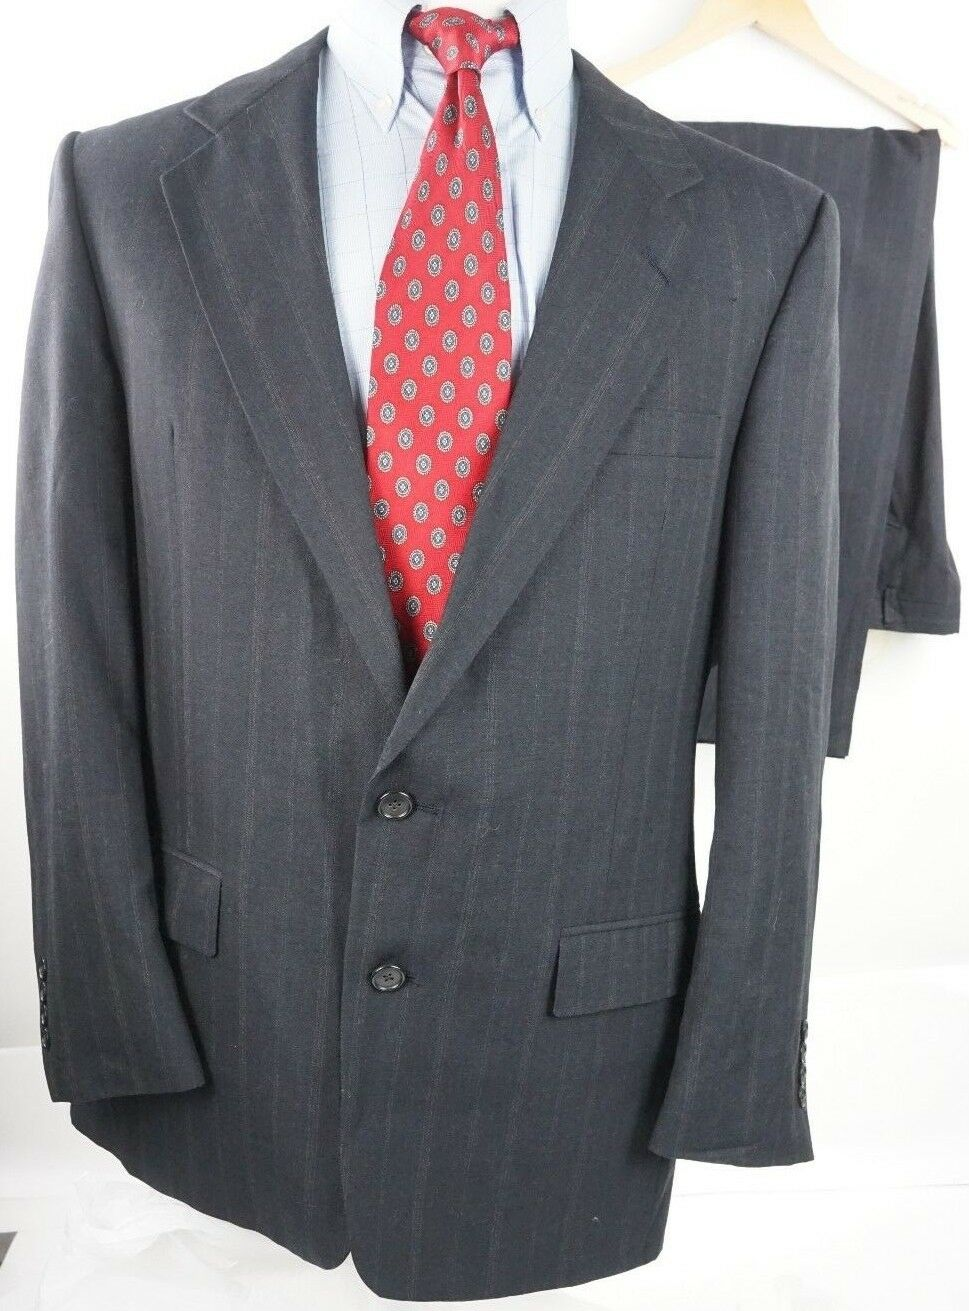 Christian Dior Monsieur  Herren Charcoal Striped Suit US 42, Pants W 37 L 31